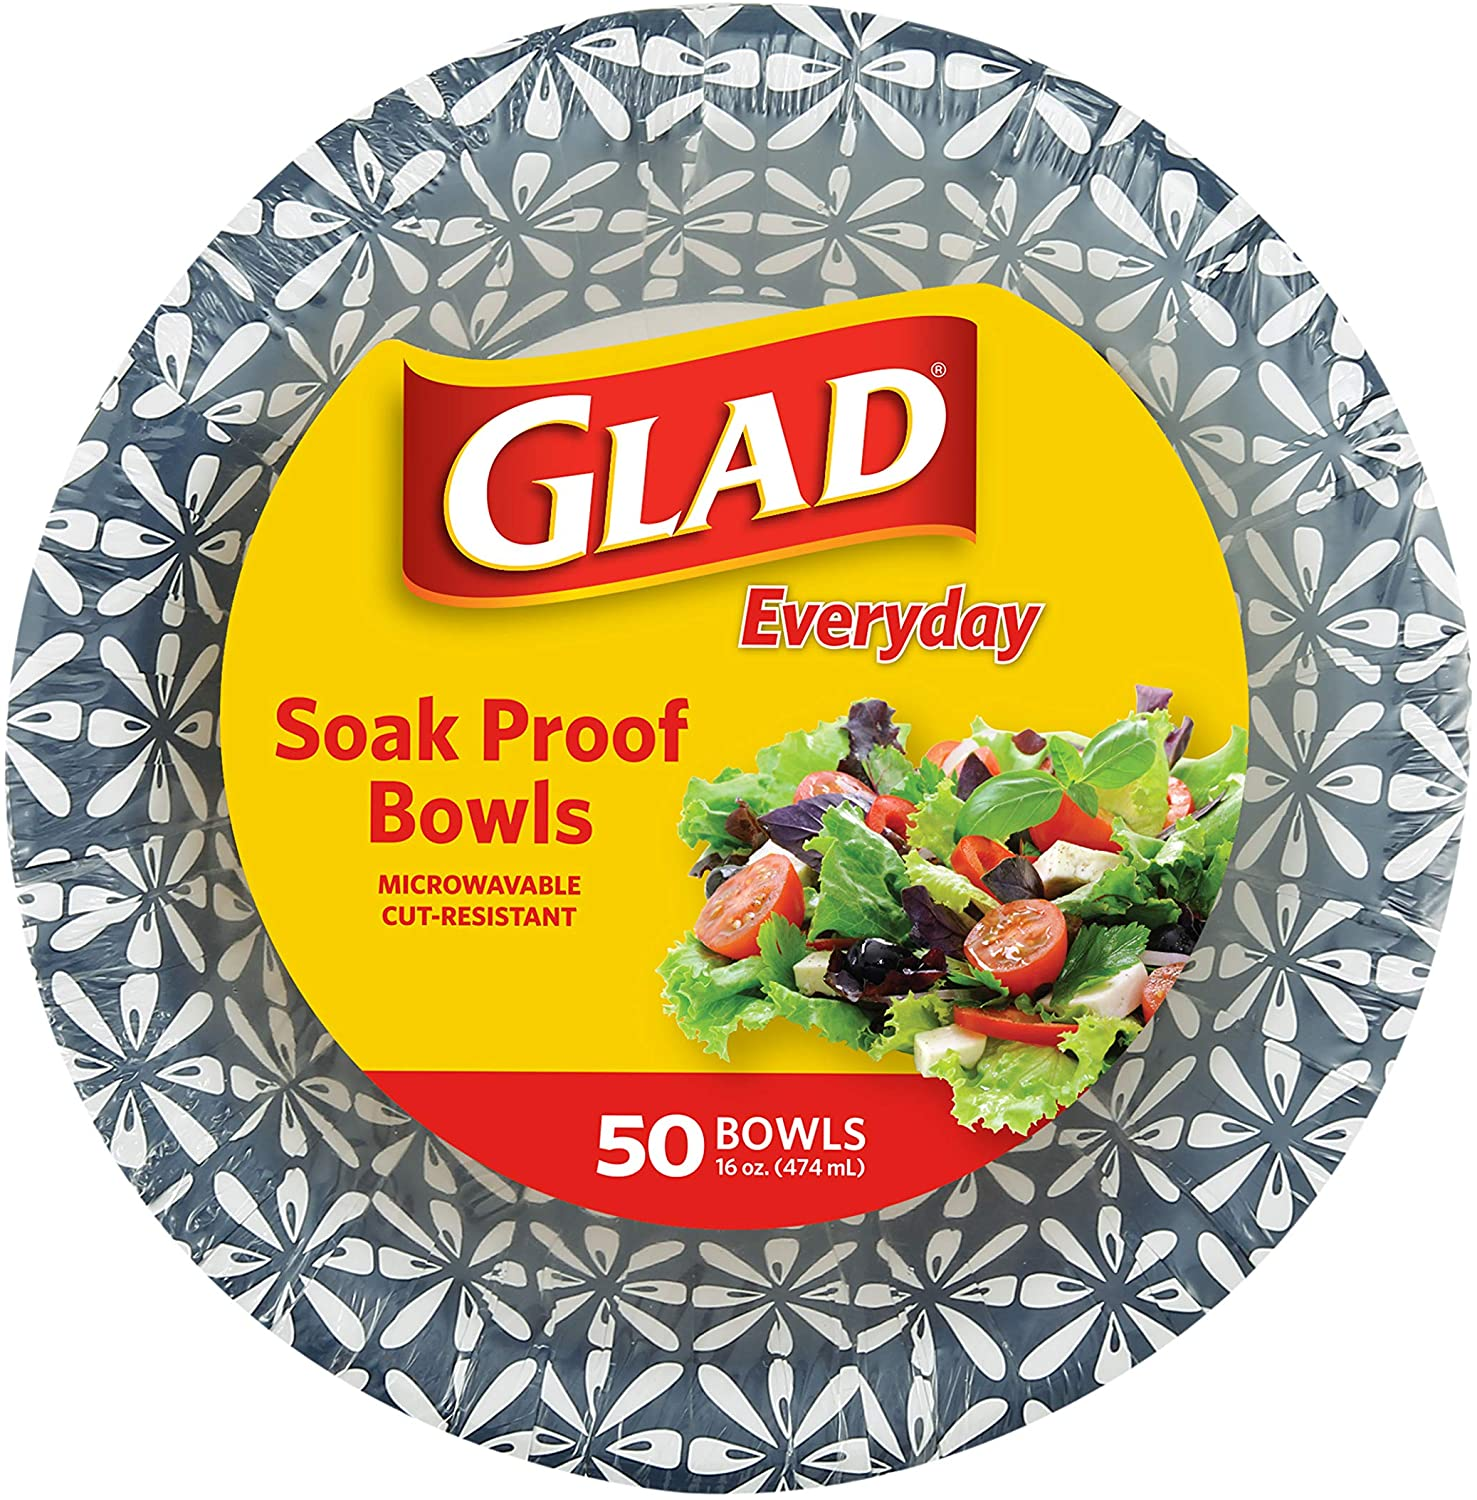 Glad 16 oz Paper Bowls With Daisy Design   Disposable Paper Bowls for Parties and Picnics Daisy Print   Microwave Safe Disposable Paper Bowls for Everyday Use, 16 Oz